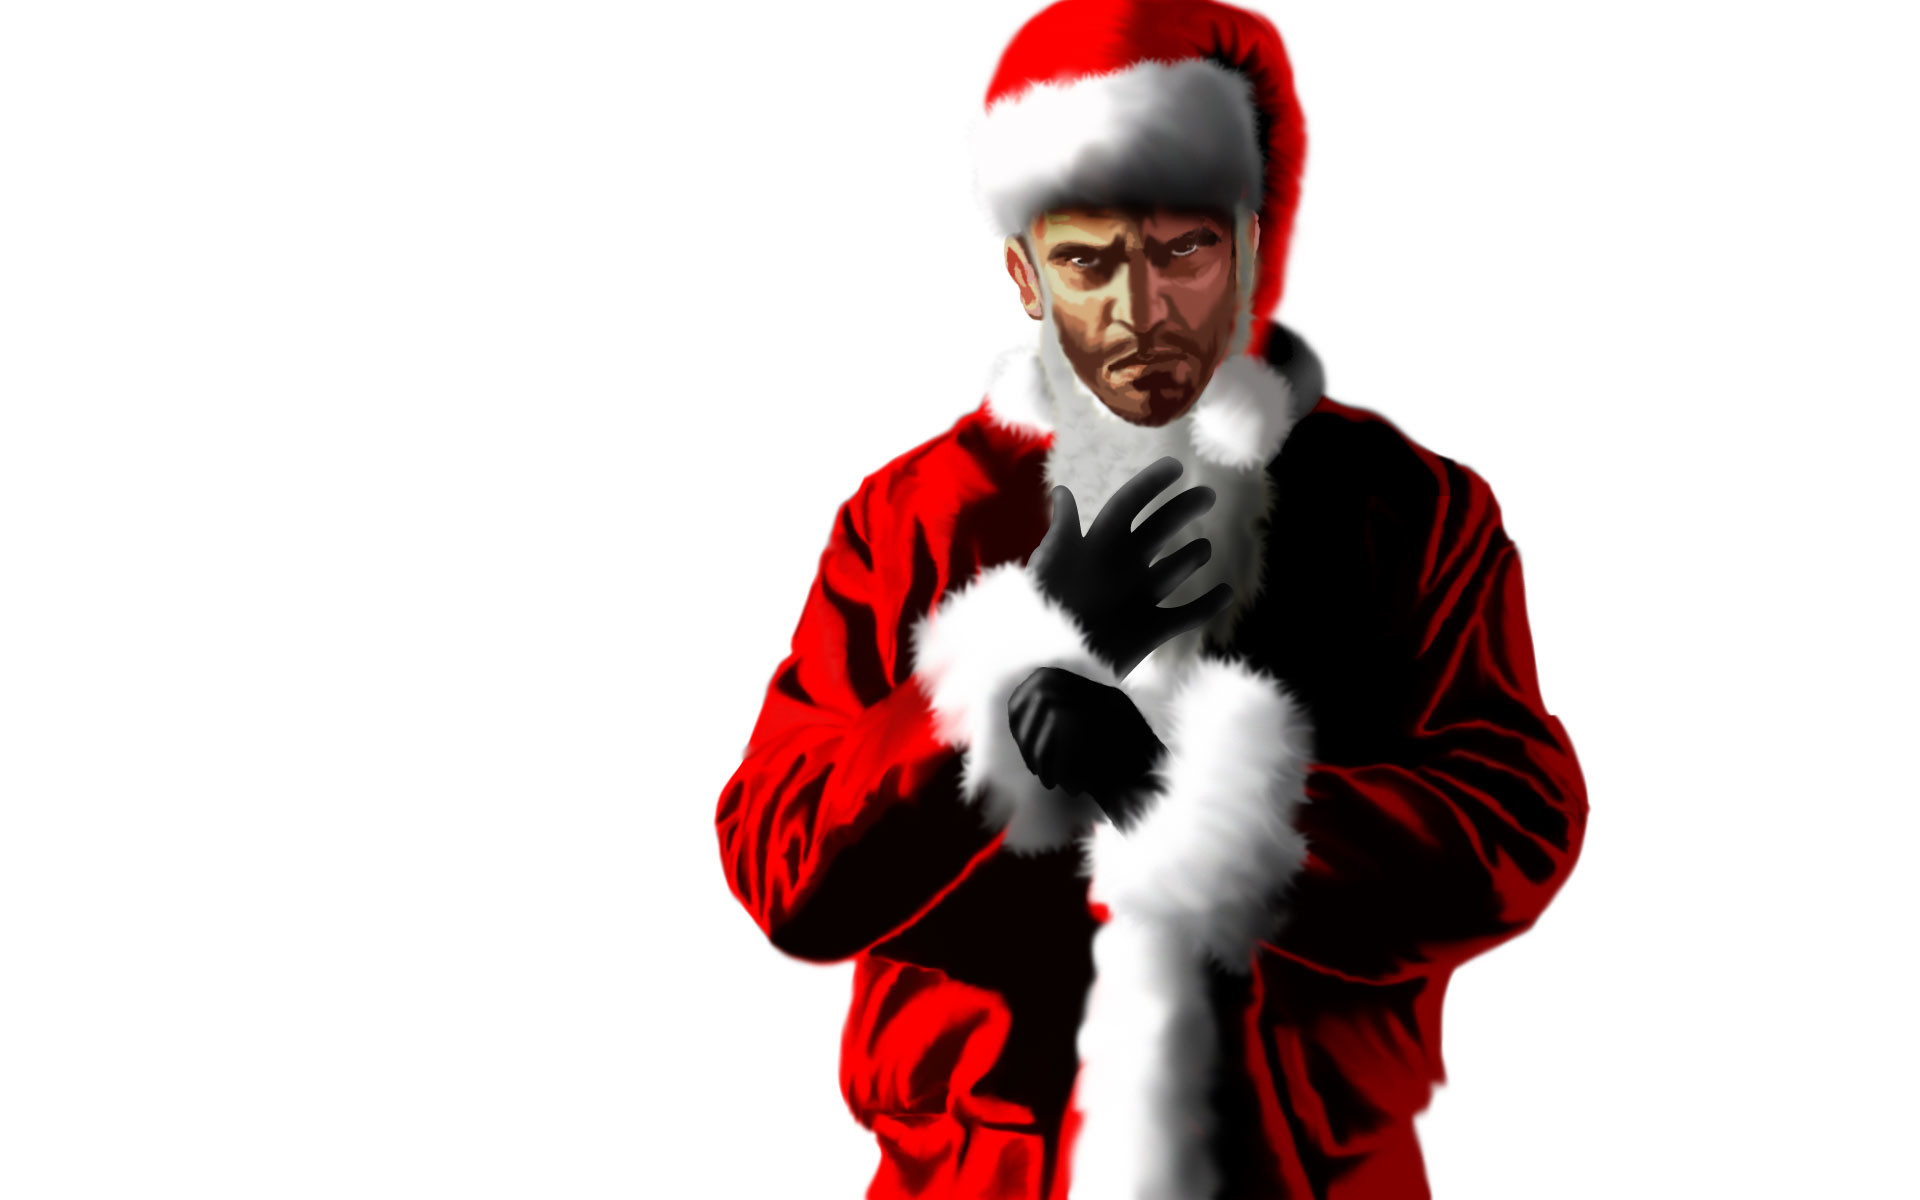 Res: 1920x1200, Niko Bellic - Santa by LeeShackleton Niko Bellic - Santa by LeeShackleton